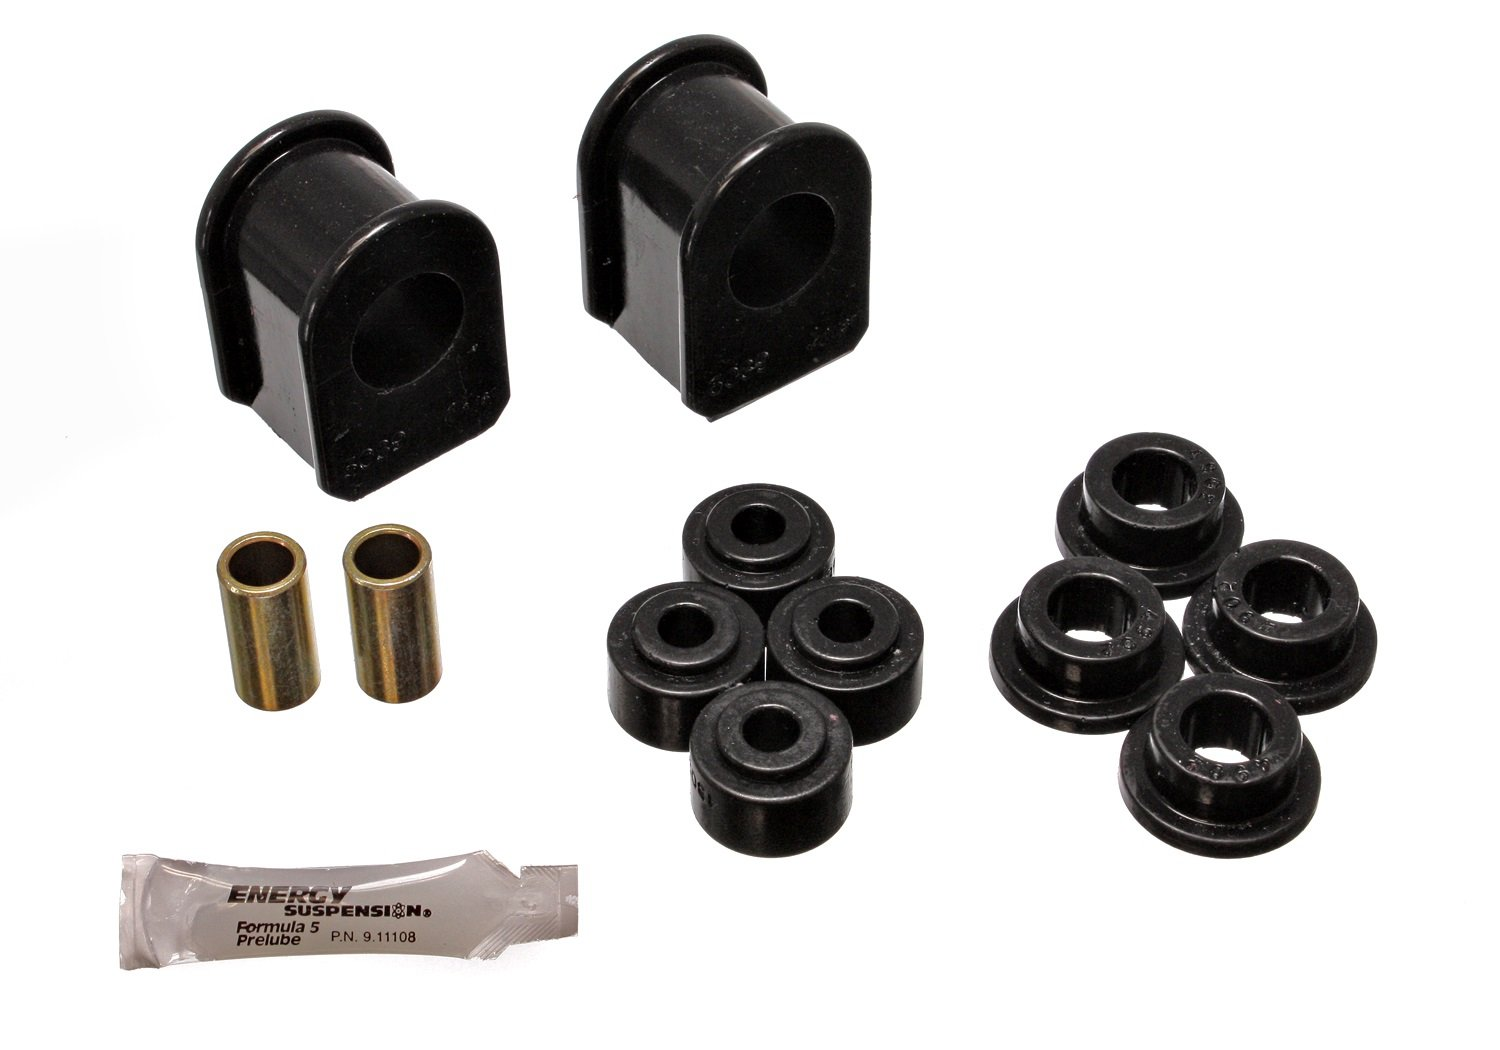 Energy Suspension 4.5103G 1' Front Stabilizer Bushing for Ford 4WD